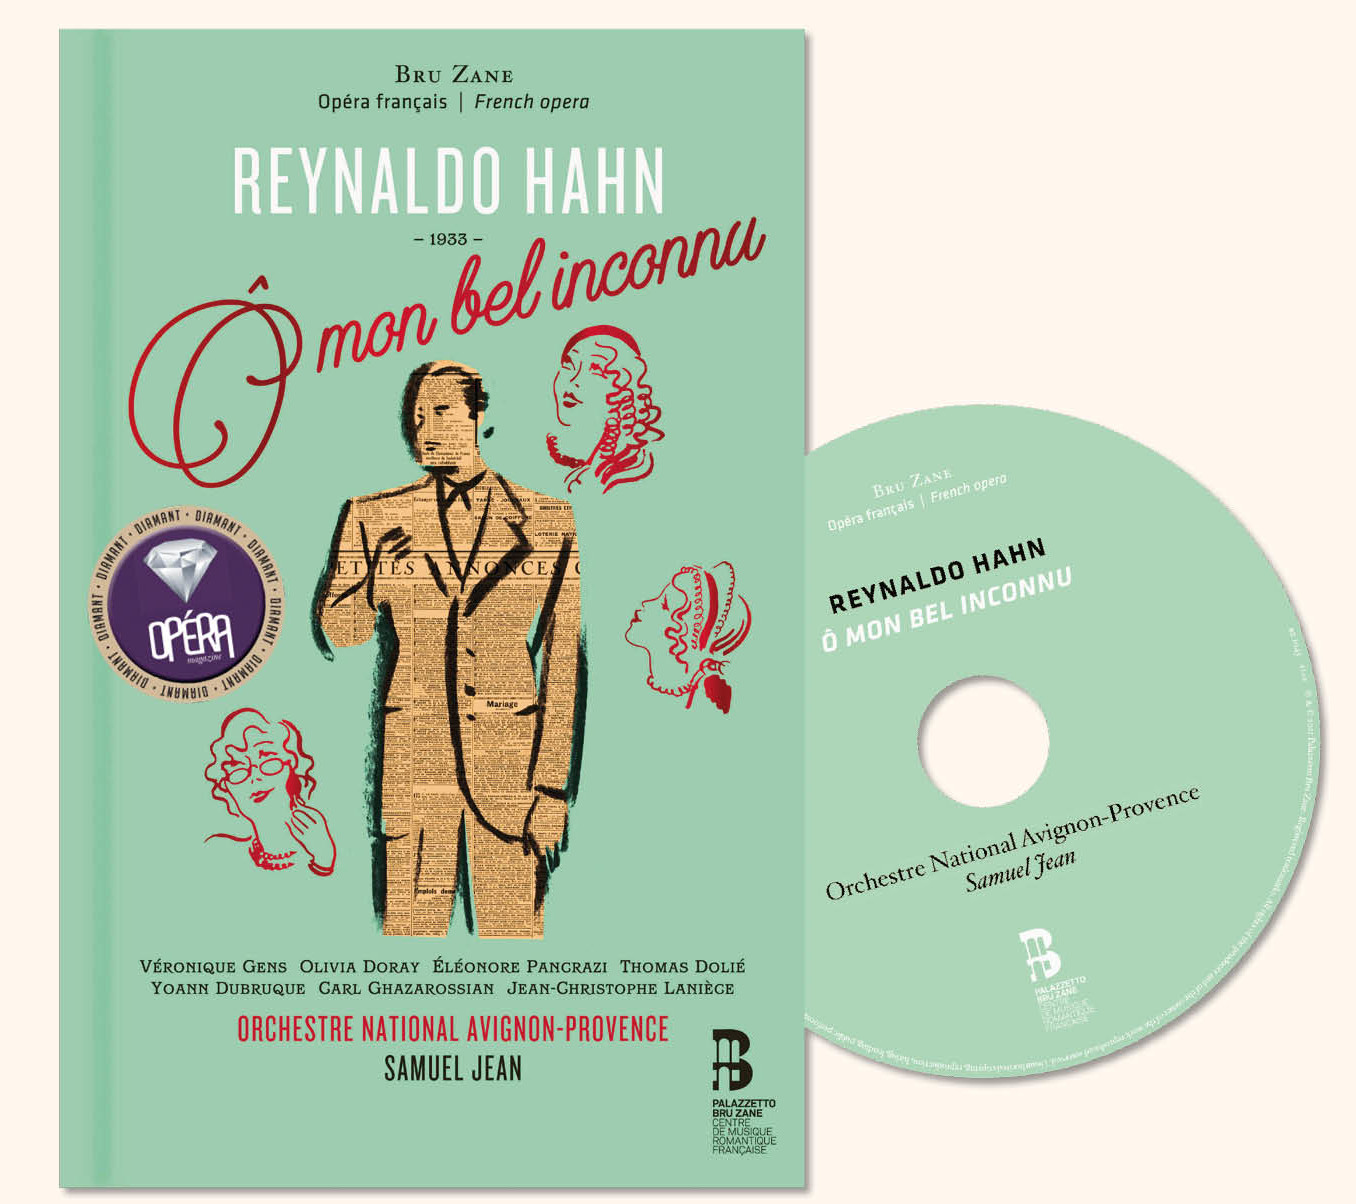 """The new release of Hahn's """"Ô mon bel inconnu."""" (Photo: Palazzetto BruZane)"""